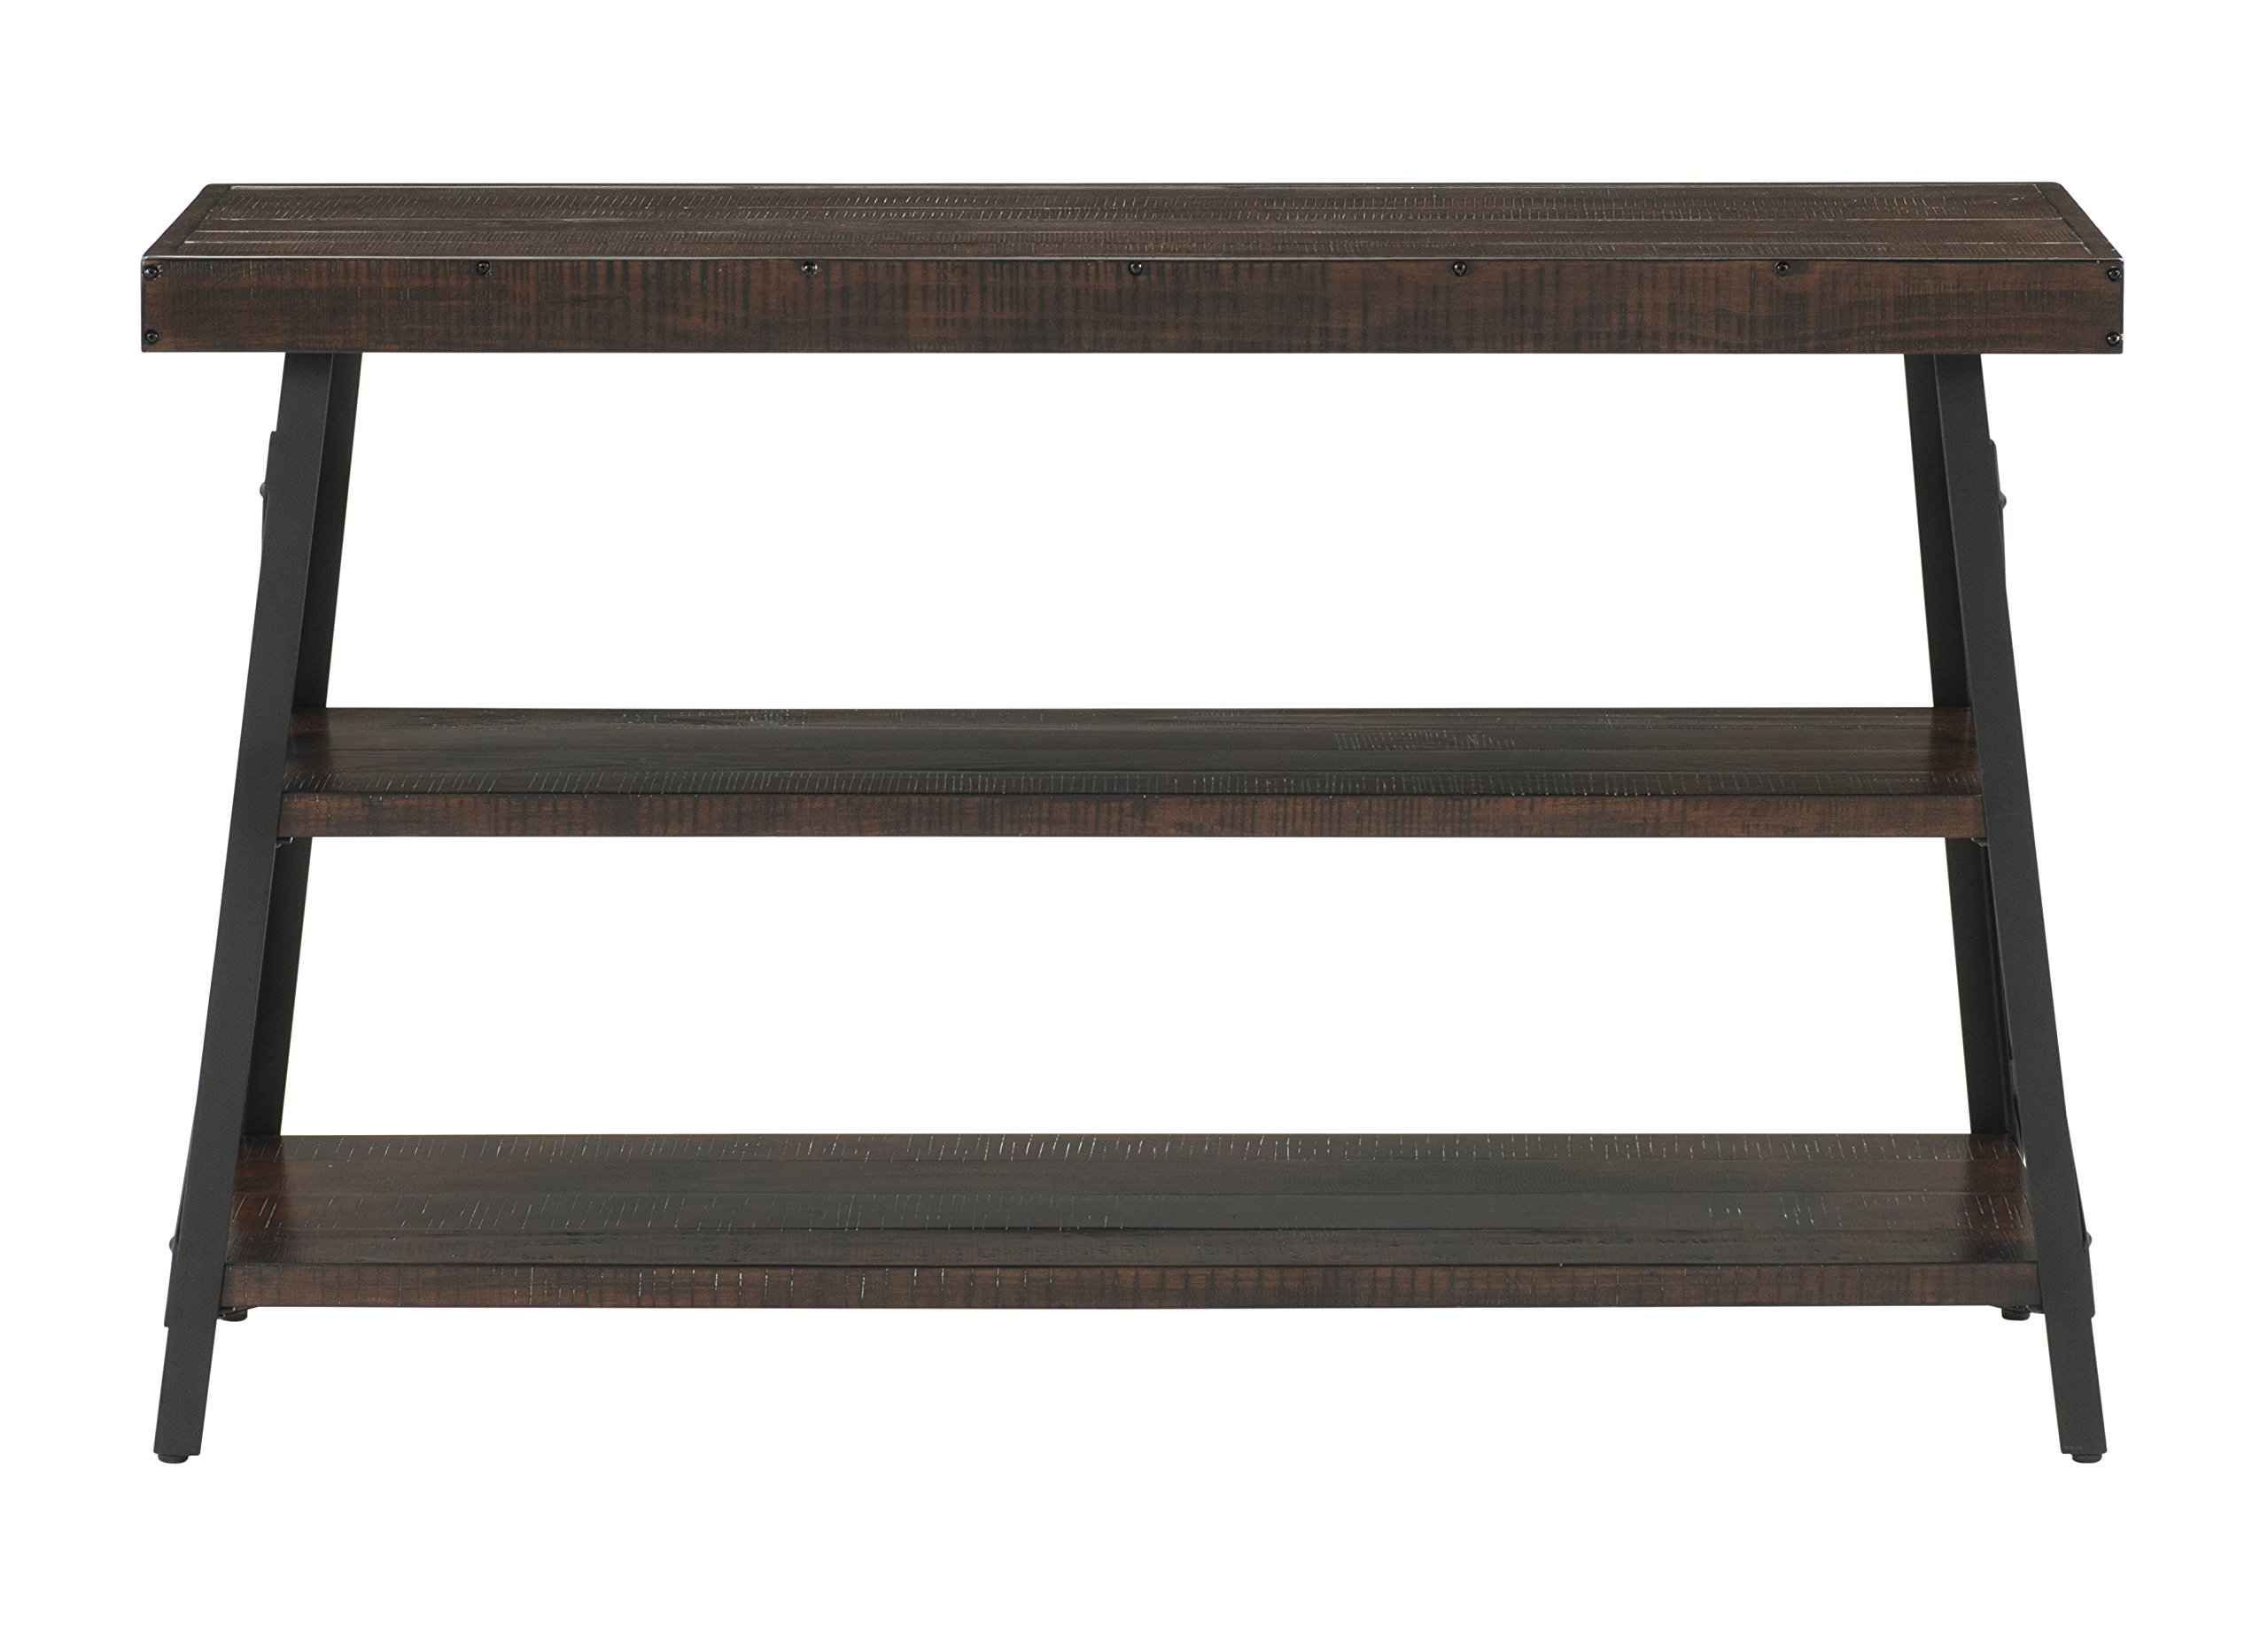 "Martin Svensson Home 890445 Xavier Sofa Console Table, Sumatra - Finish: Sumatra - blend of a deep rich Coffee Finish with a slight amount of white pumice hang up Crafted from solid wood - New Zealand pine with rough hewn saw marks Exposed rivets across the Top and Black Steel metal ""x"" cross on the end caps give it a distinct industrial and rustic look - living-room-furniture, living-room, console-tables - 81fMoFHbYBL -"